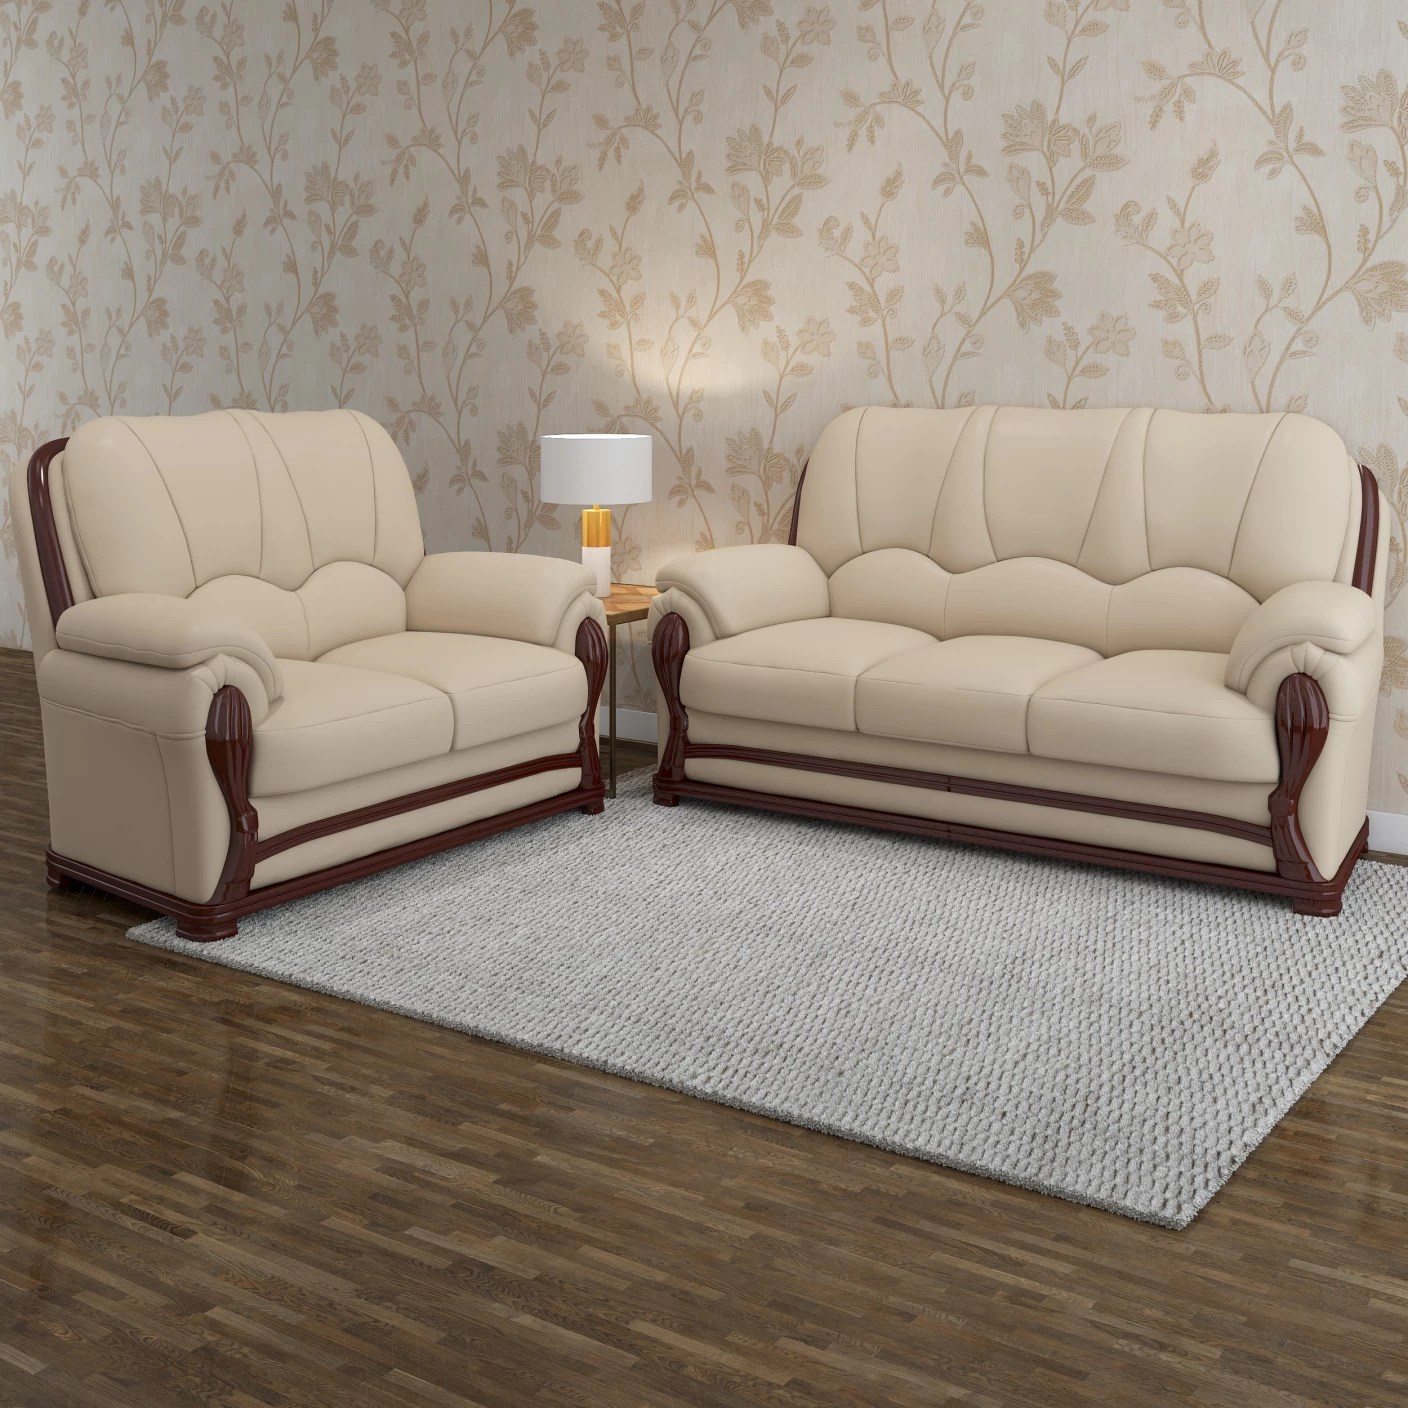 Sofa Set Price Haldwani Vintage Ivoria Fabric 3 43 2 Mahogany Sofa Set Price In